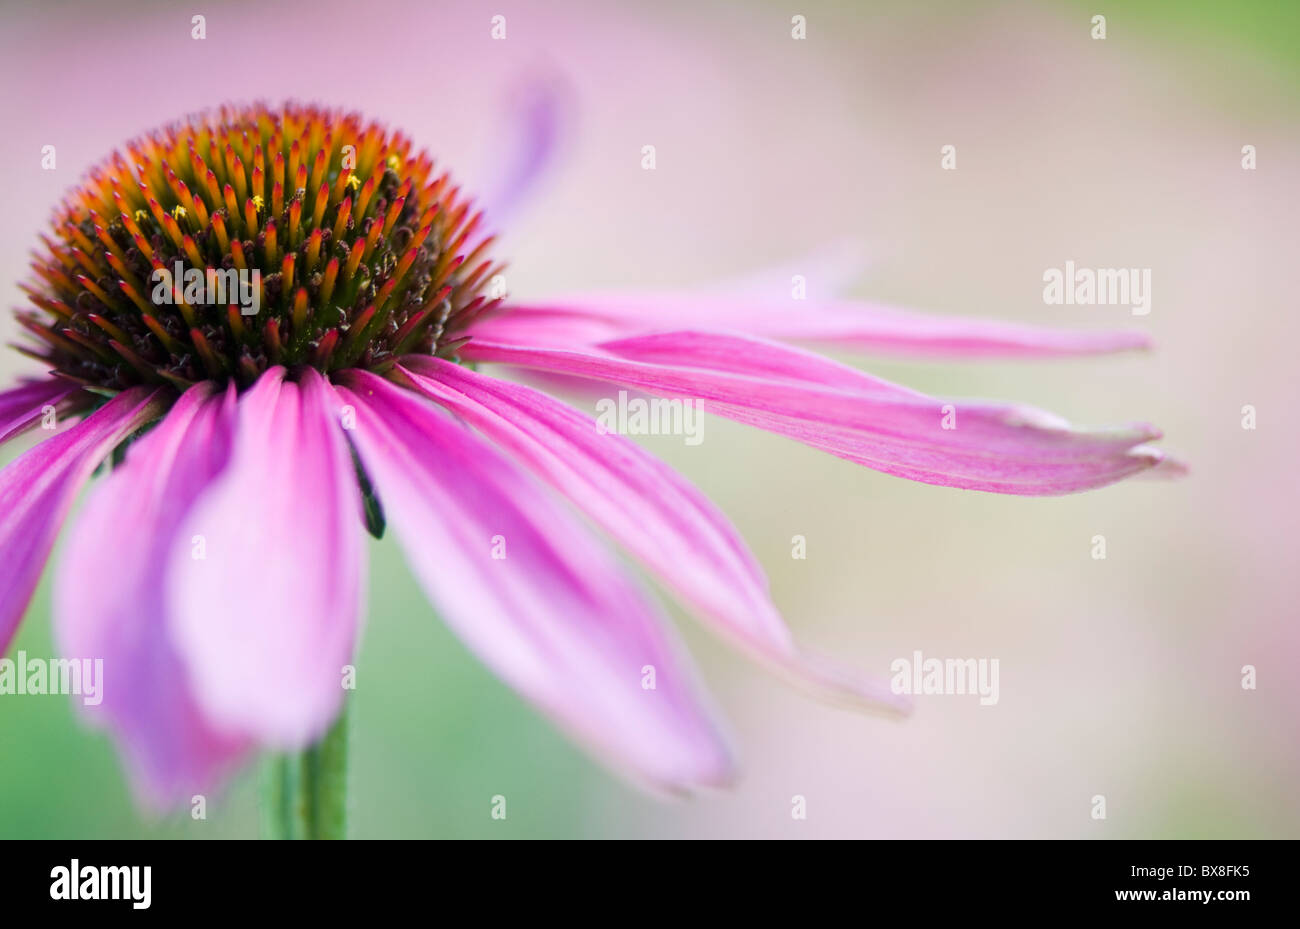 A single close-up image of Echinacea purpurea - Coneflower - Stock Image